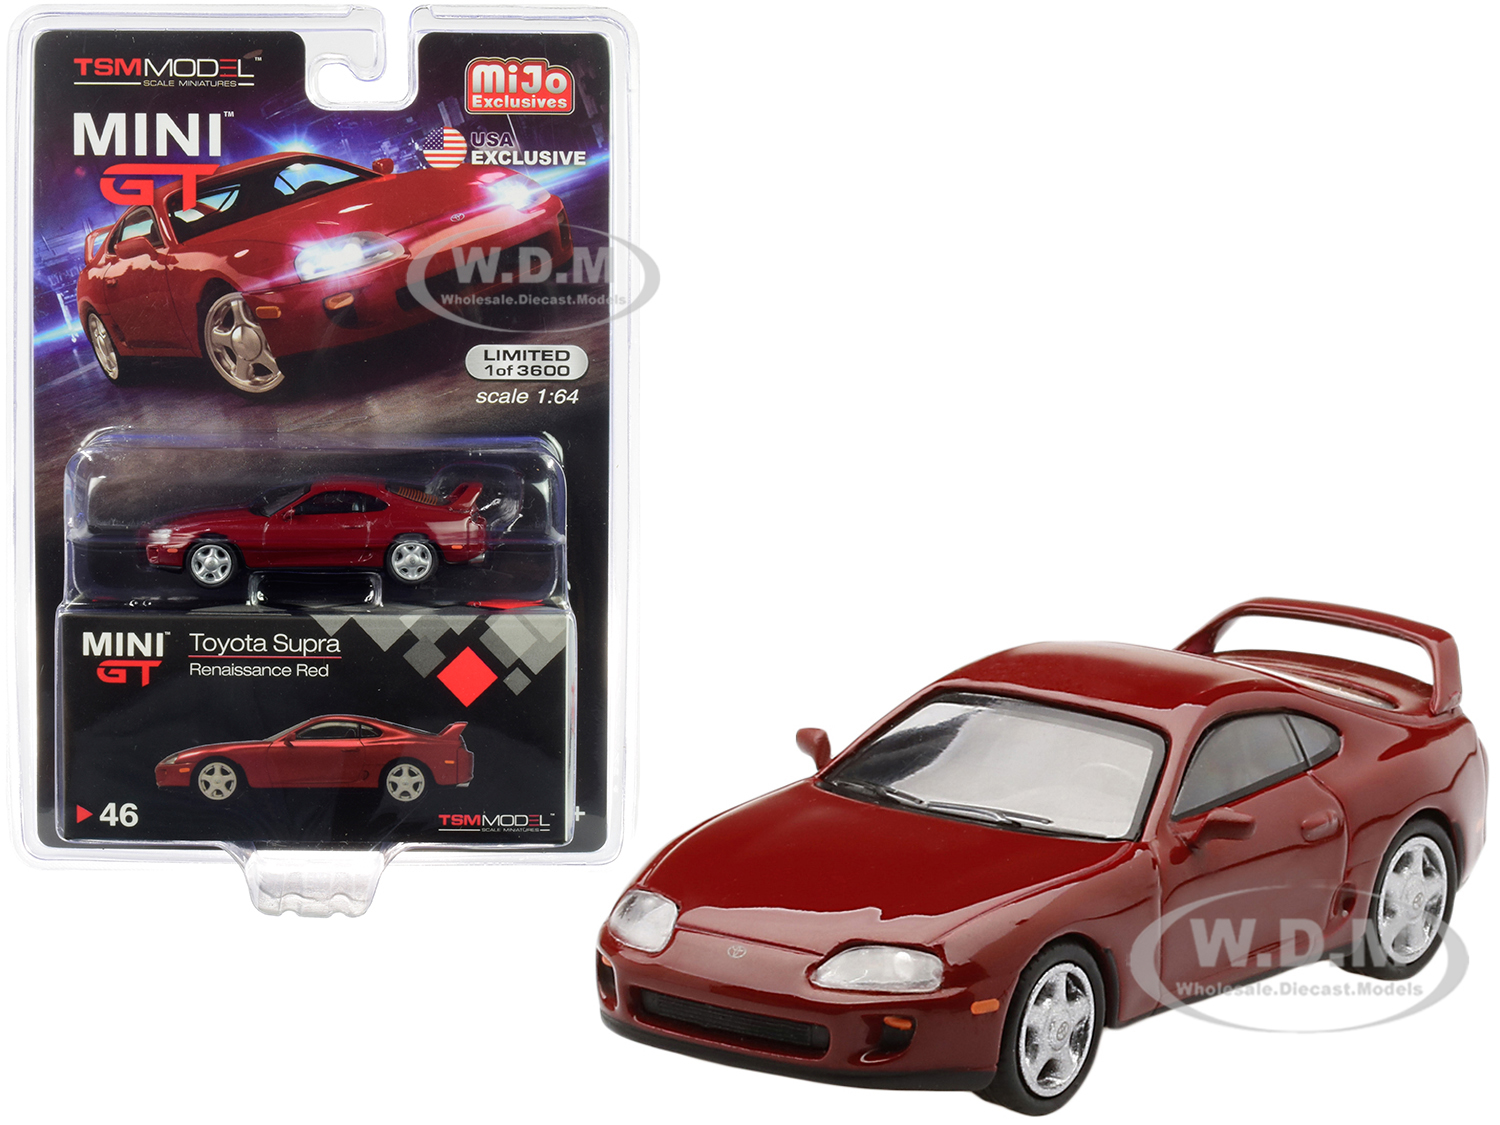 Toyota Supra (JZA80) LHD (Left Hand Drive) Renaissance Red Limited Edition to 3600 pieces Worldwide 1/64 Diecast Model Car by True Scale Miniatures